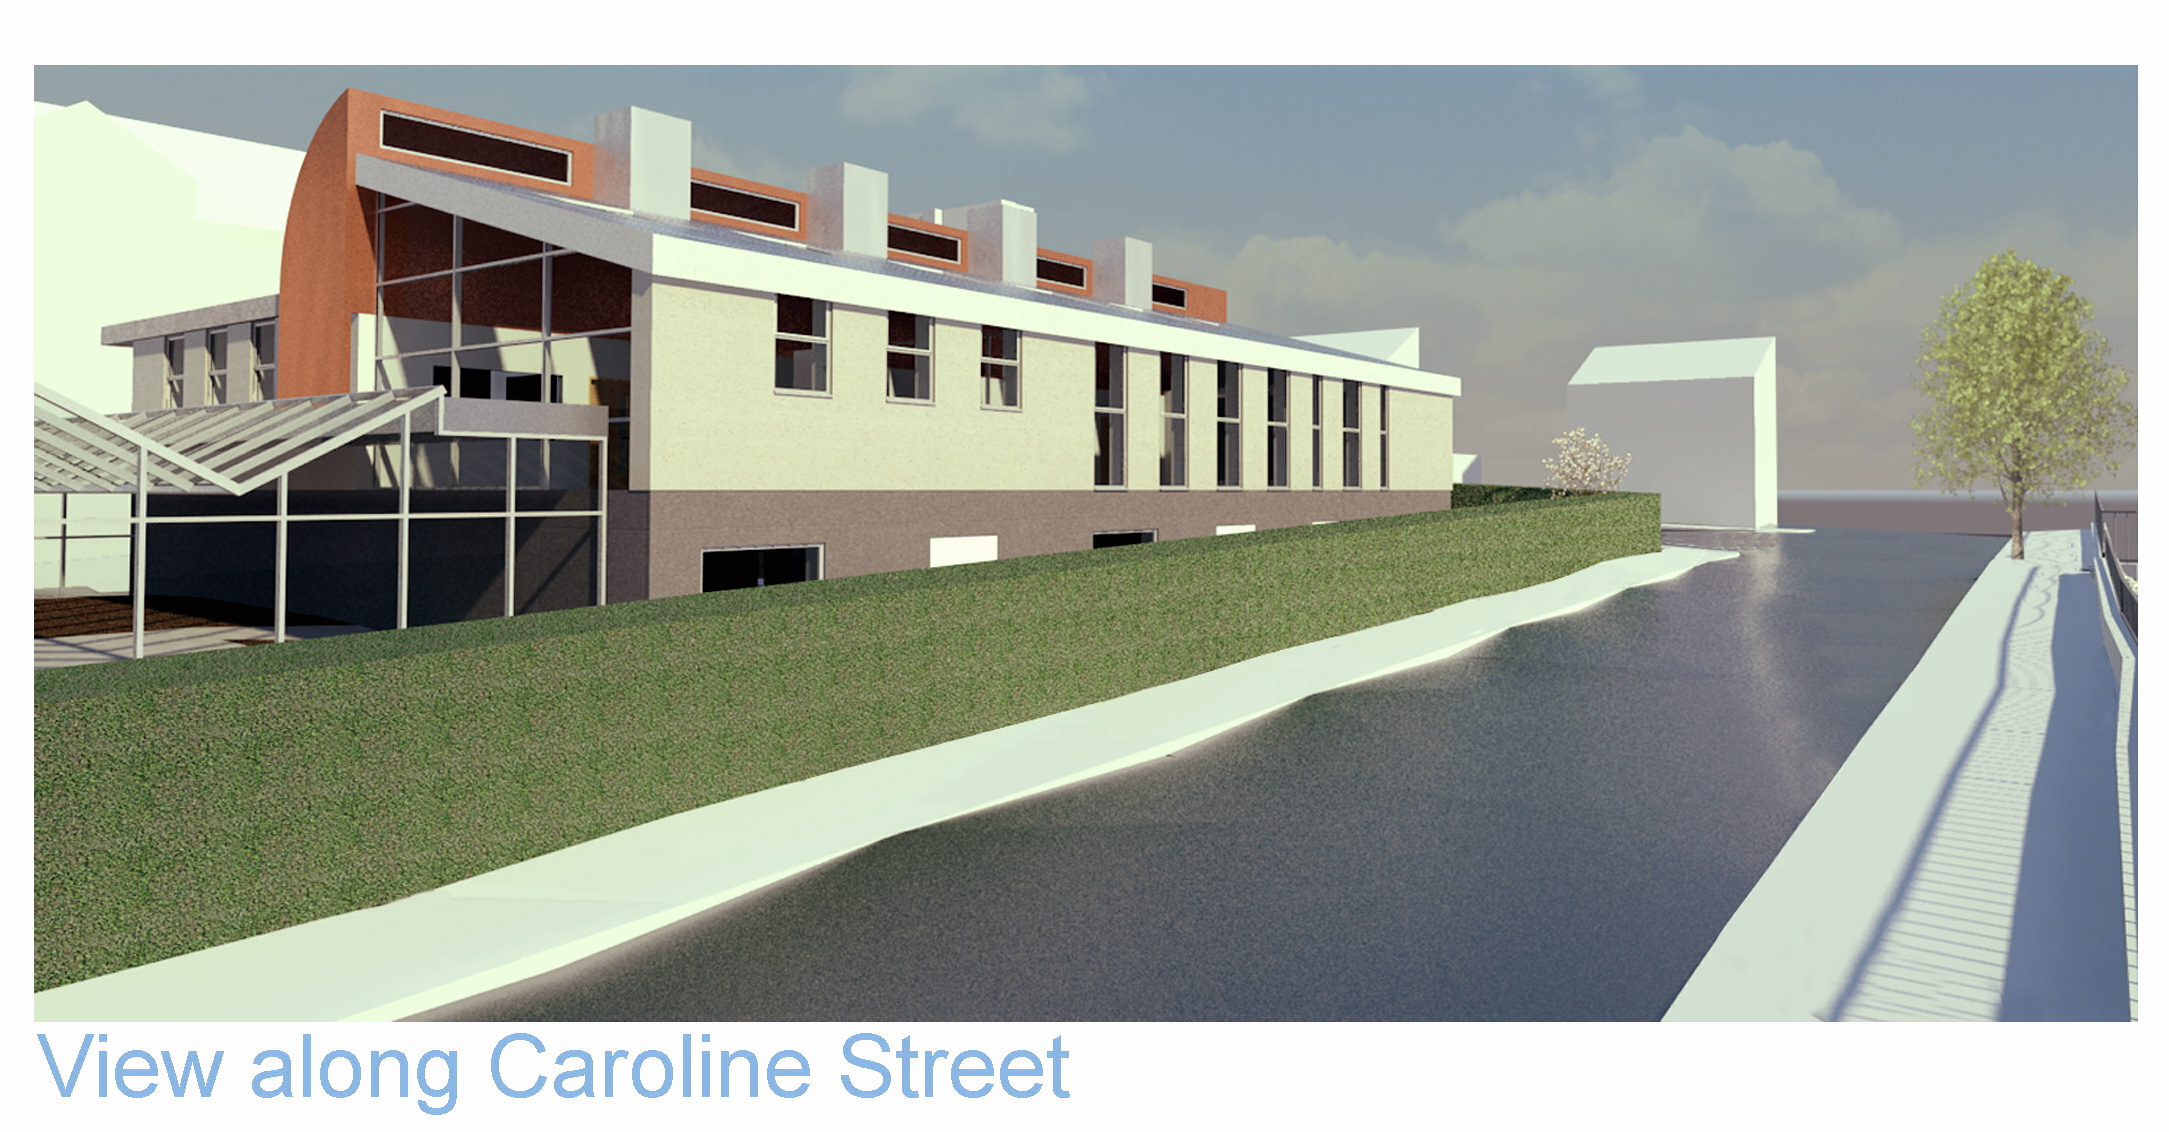 An artist's impression of the building